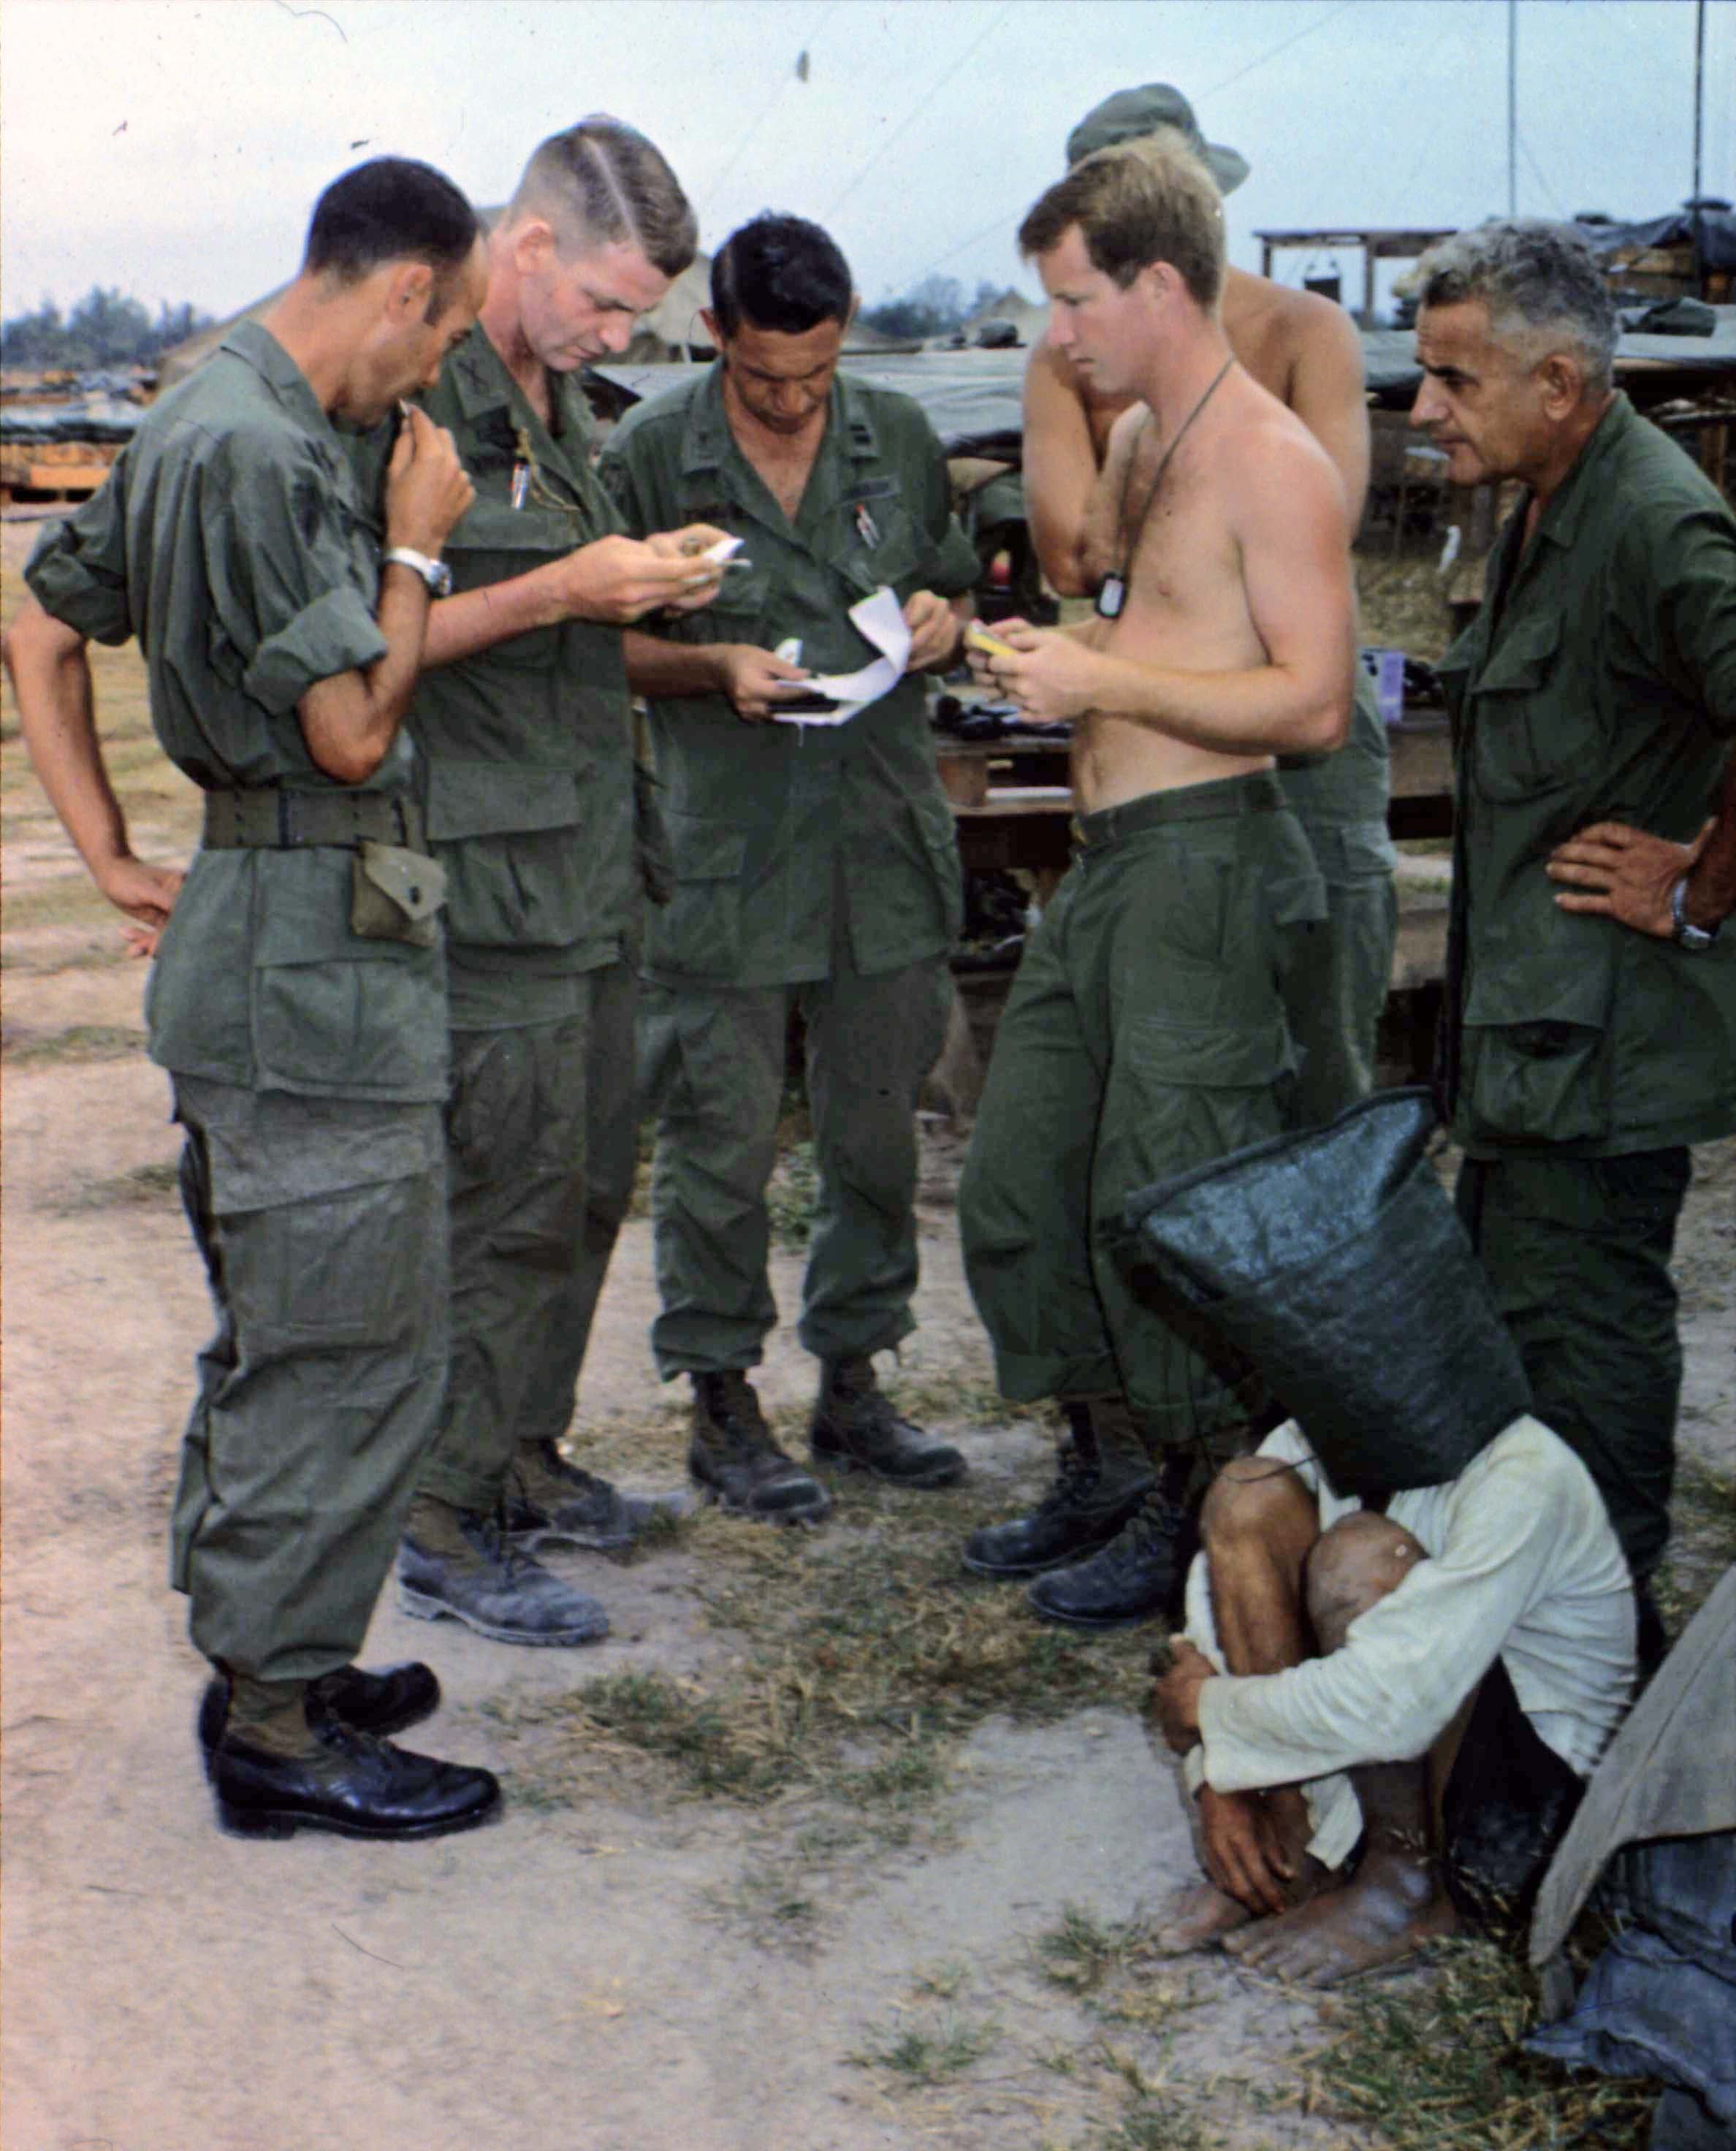 http://upload.wikimedia.org/wikipedia/commons/f/f7/Vietconginterrogation.jpg